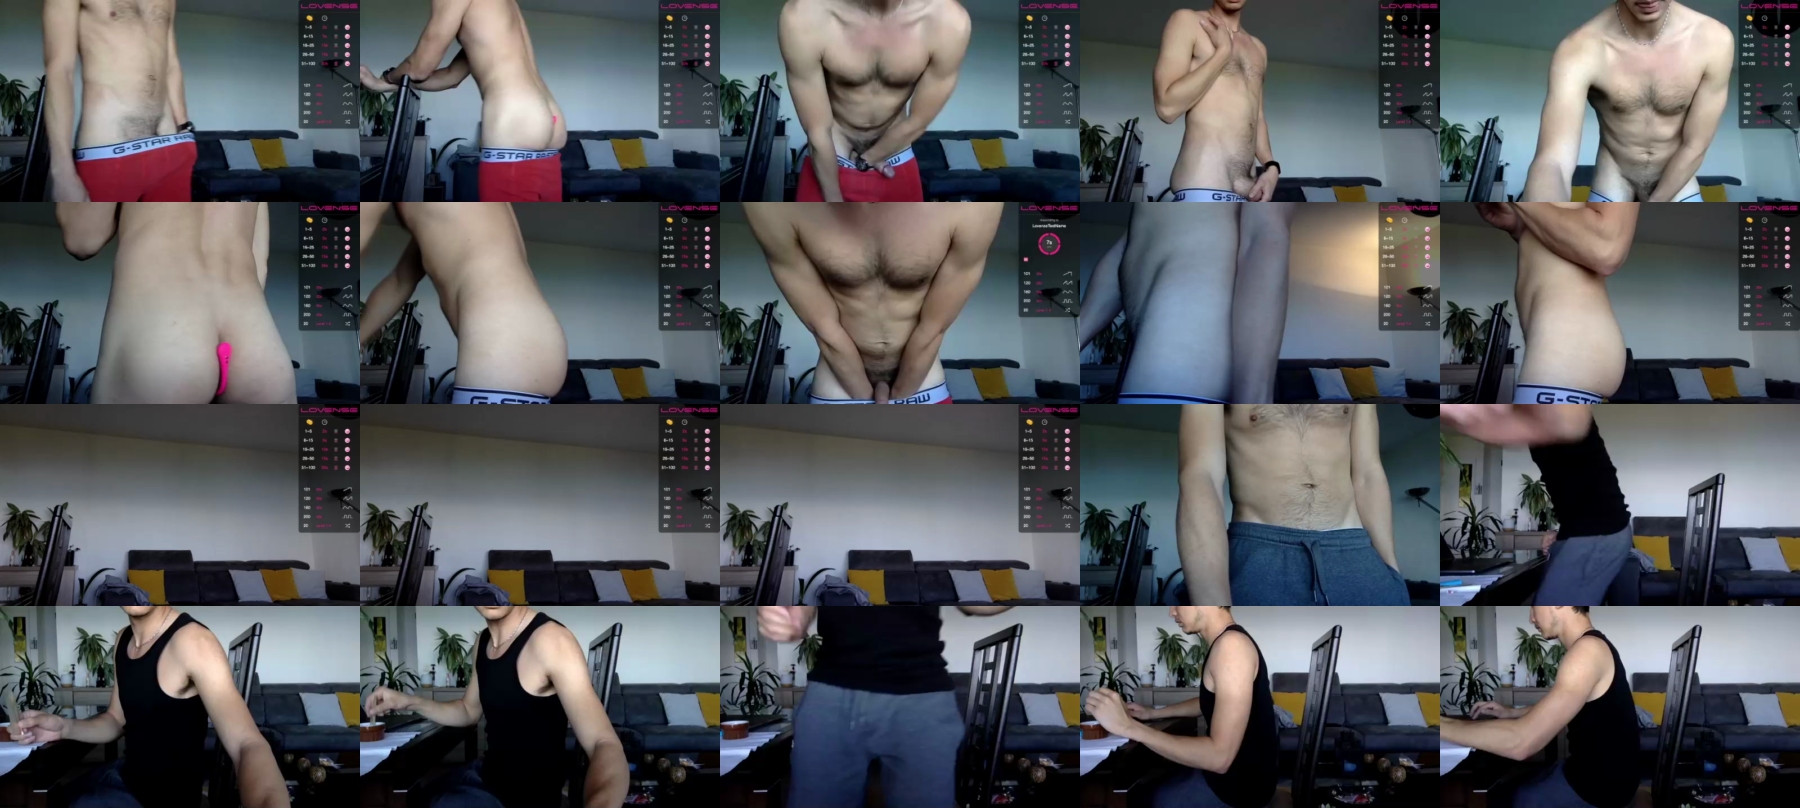 You_And_Me__ Chaturbate 12-05-2021 Male Topless